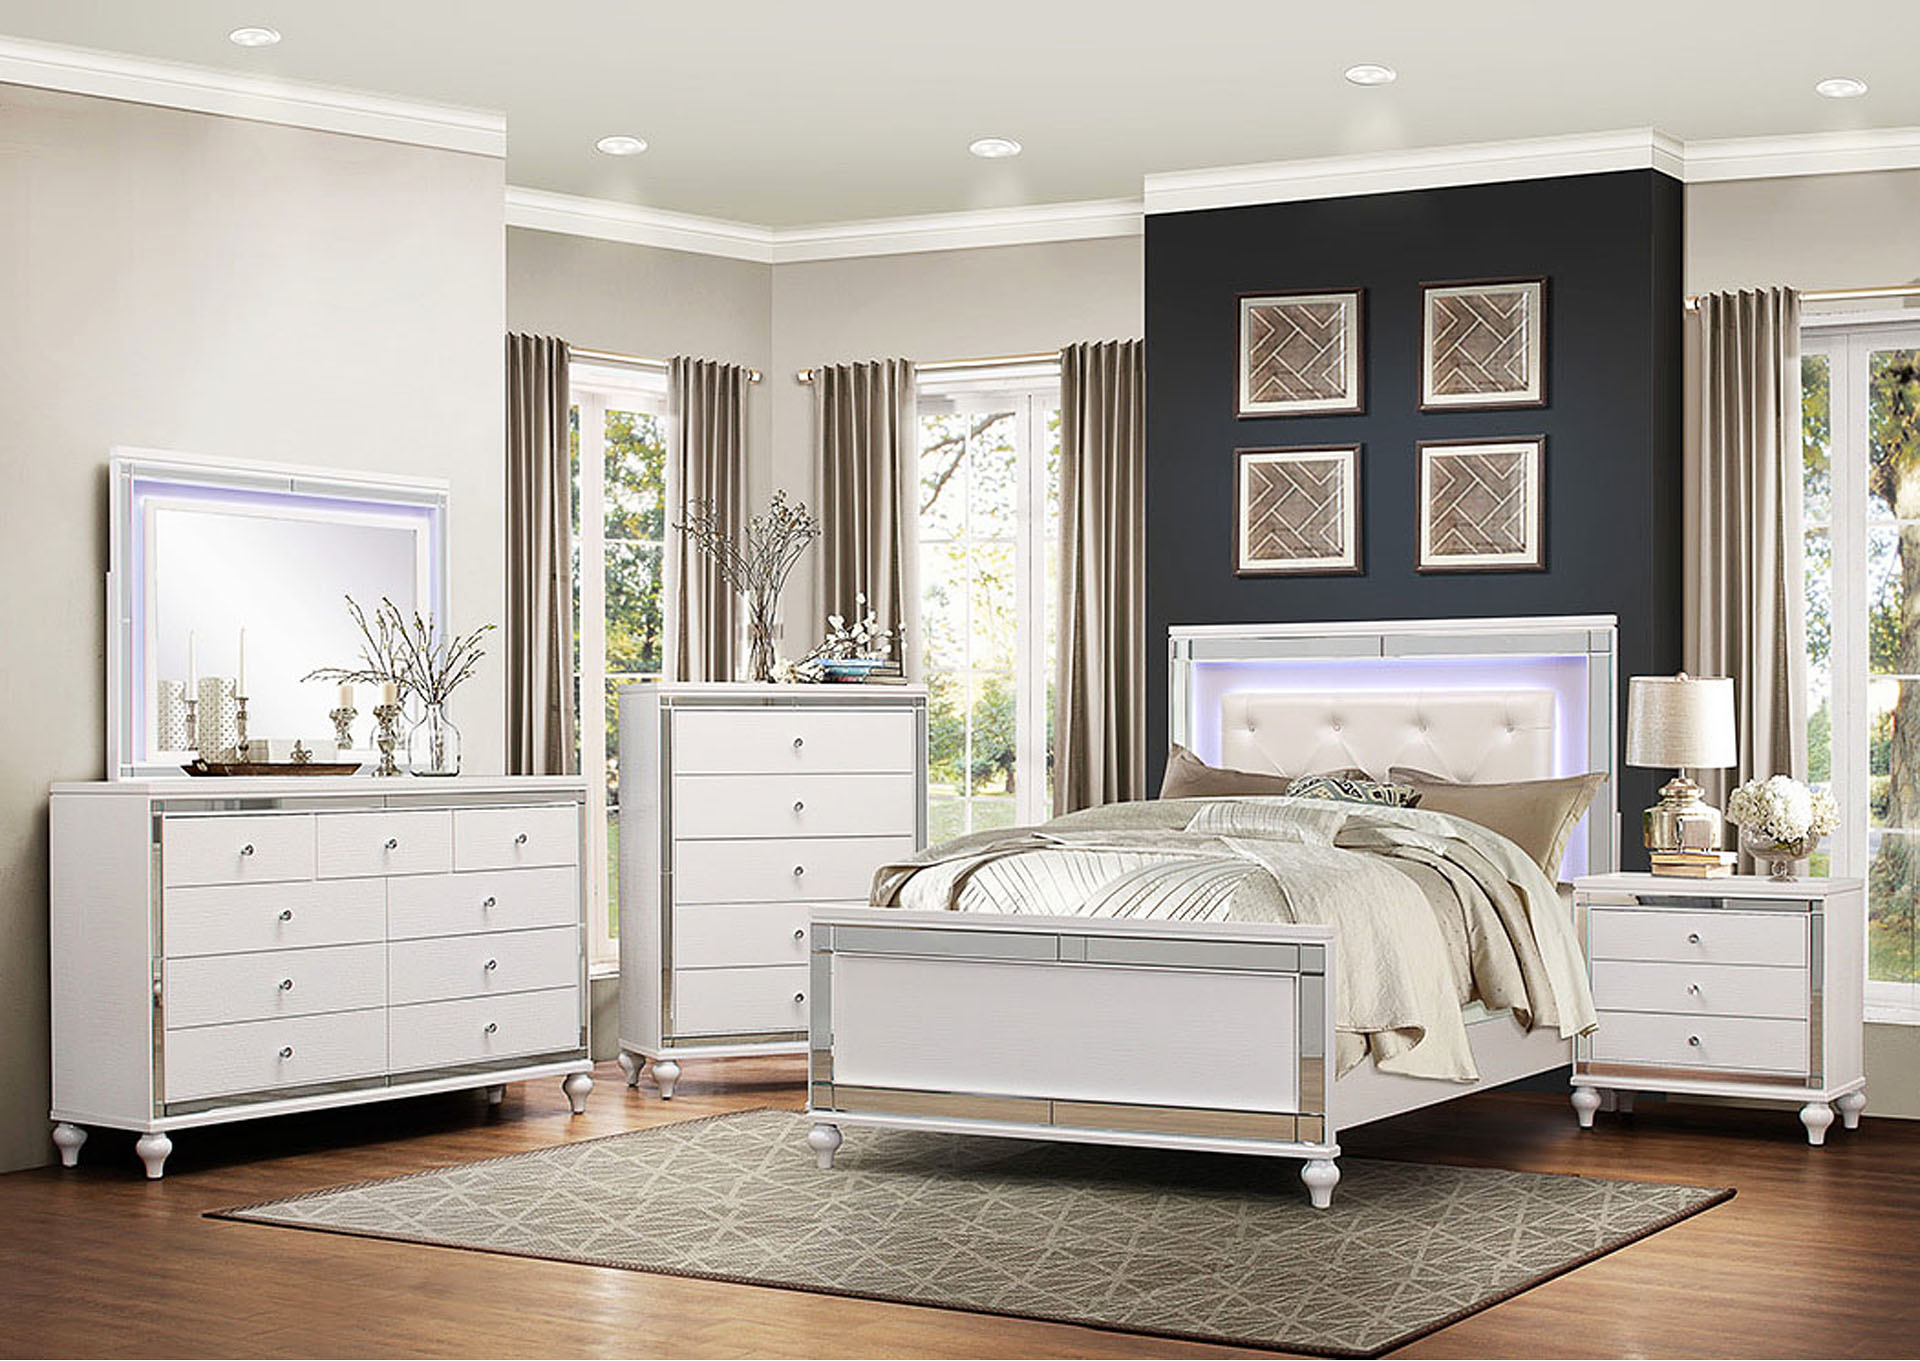 Eastern King Bed w/LED Lighting,Homelegance